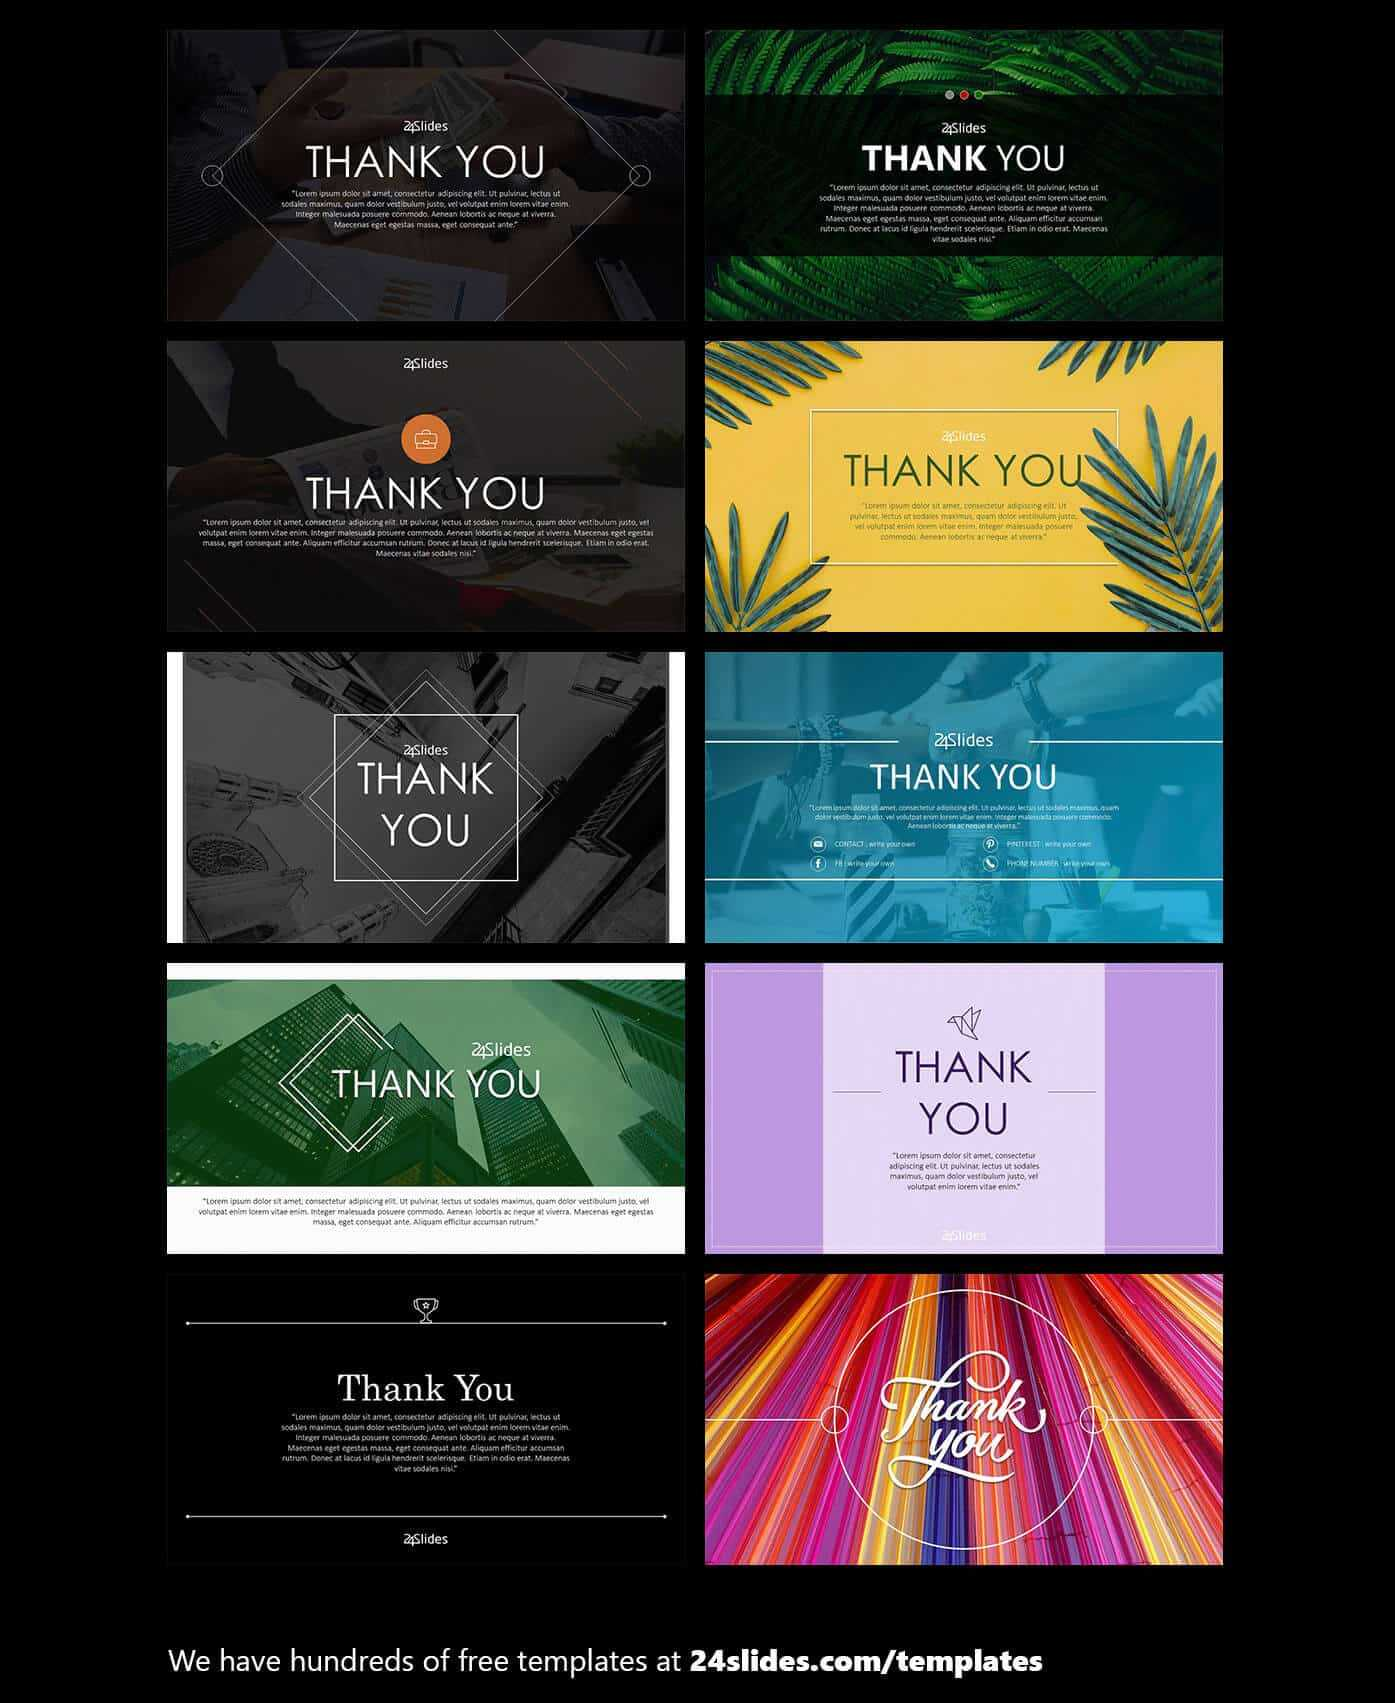 15 Fun And Colorful Free Powerpoint Templates | Present Better With Fun Powerpoint Templates Free Download